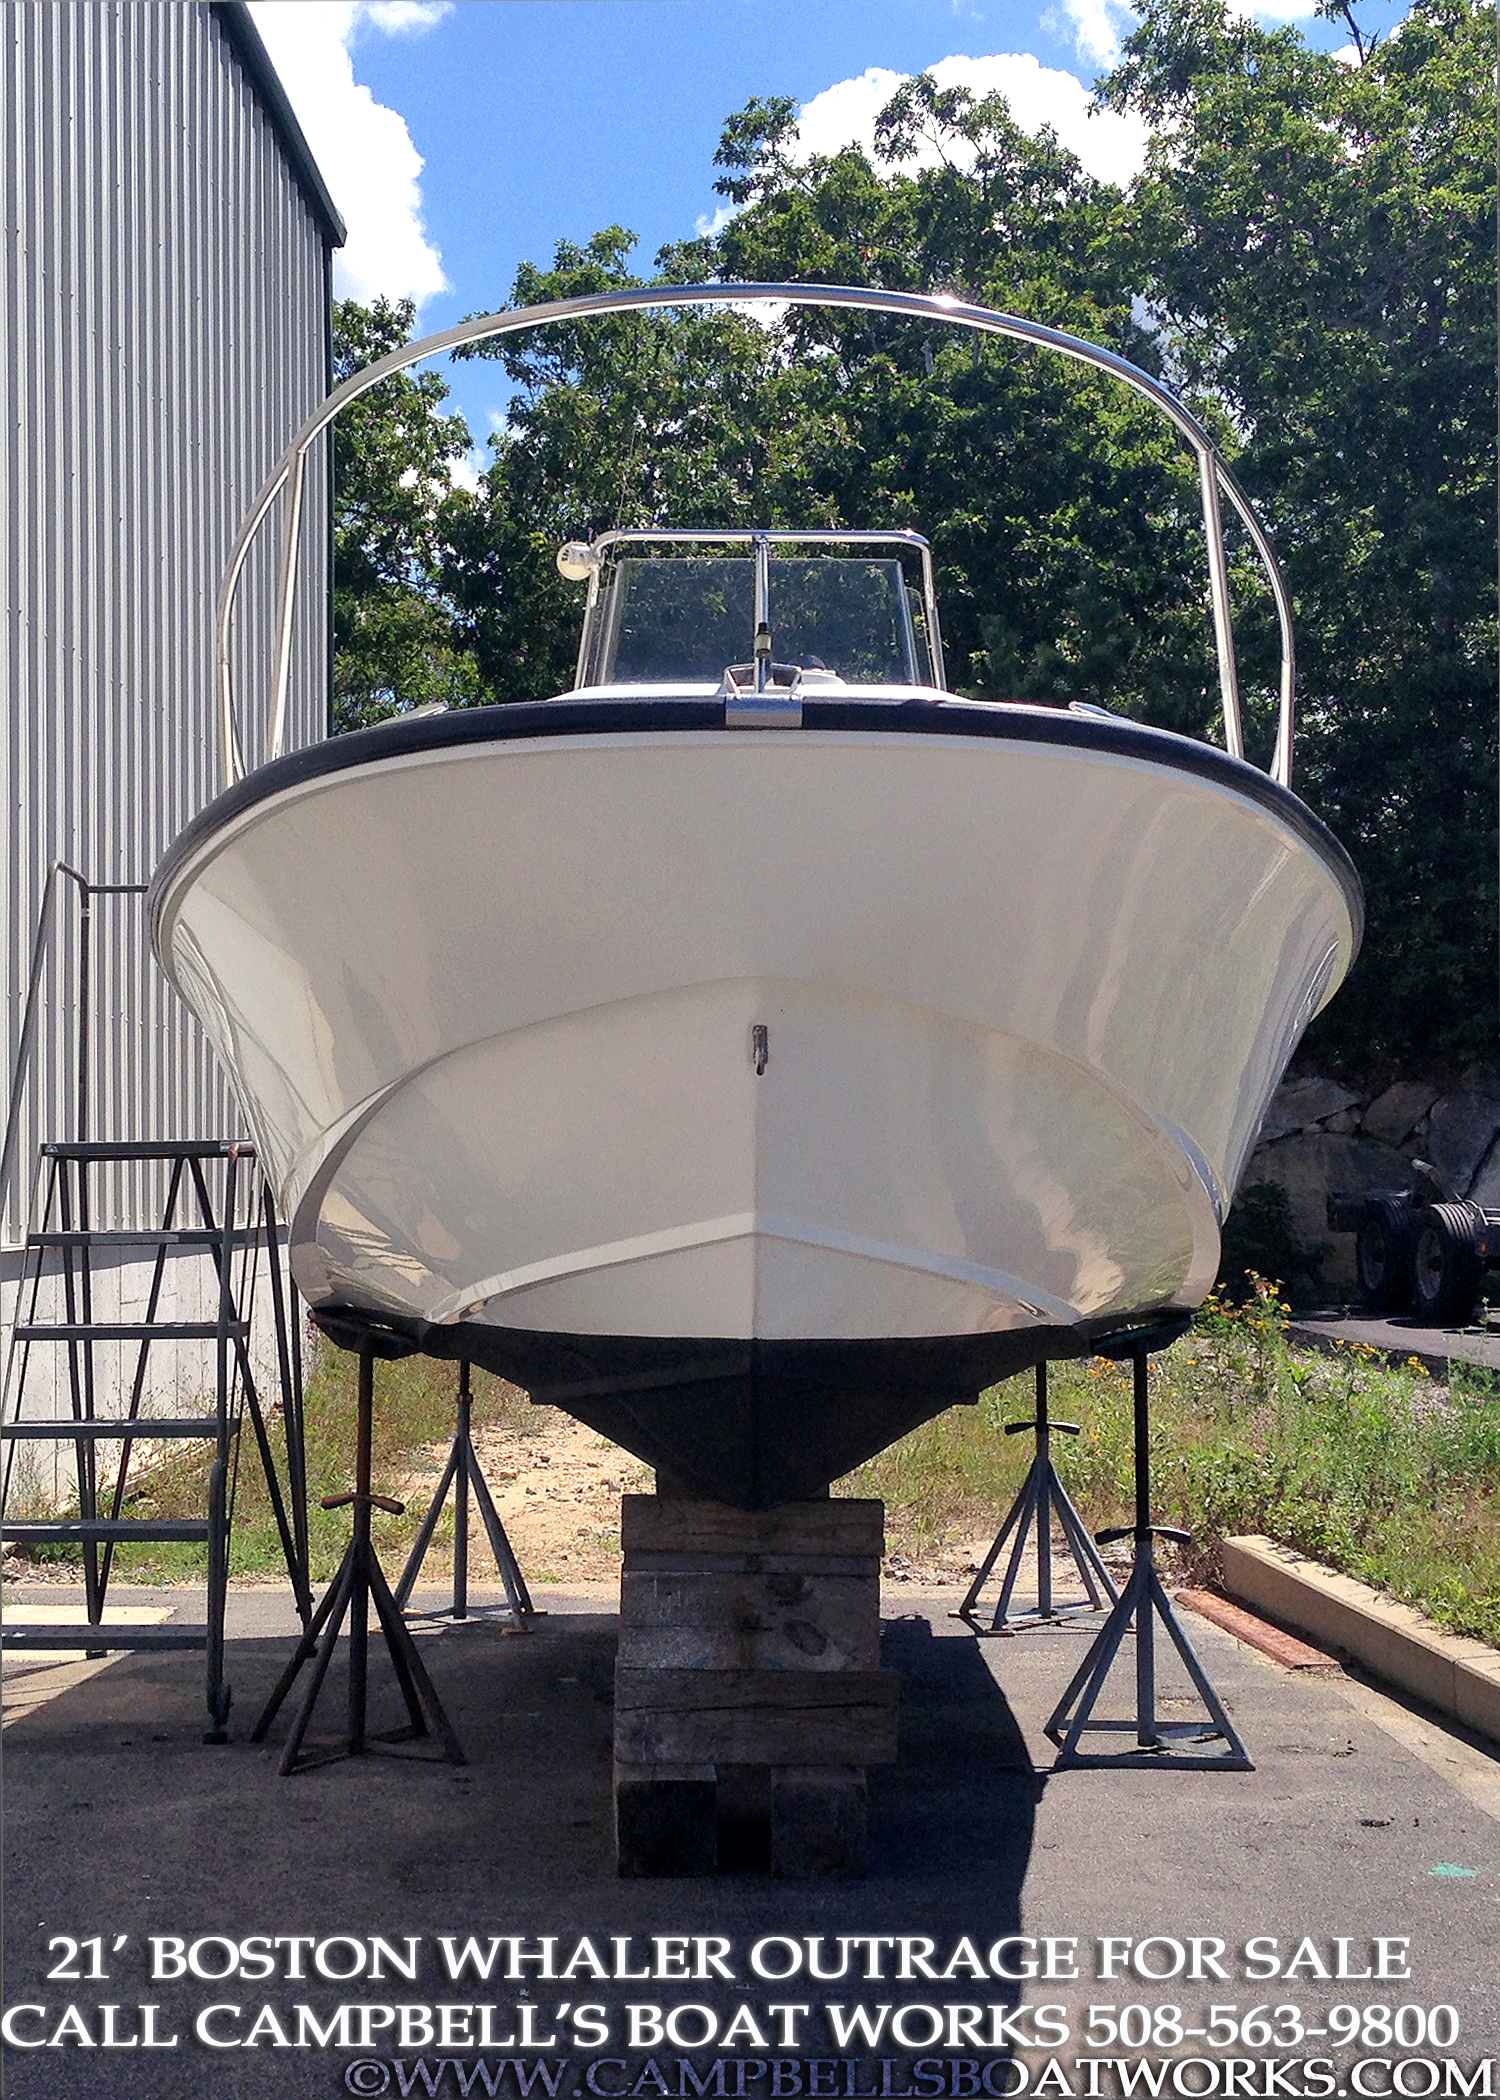 1994 21 Boston Whaler Outrage For Sale